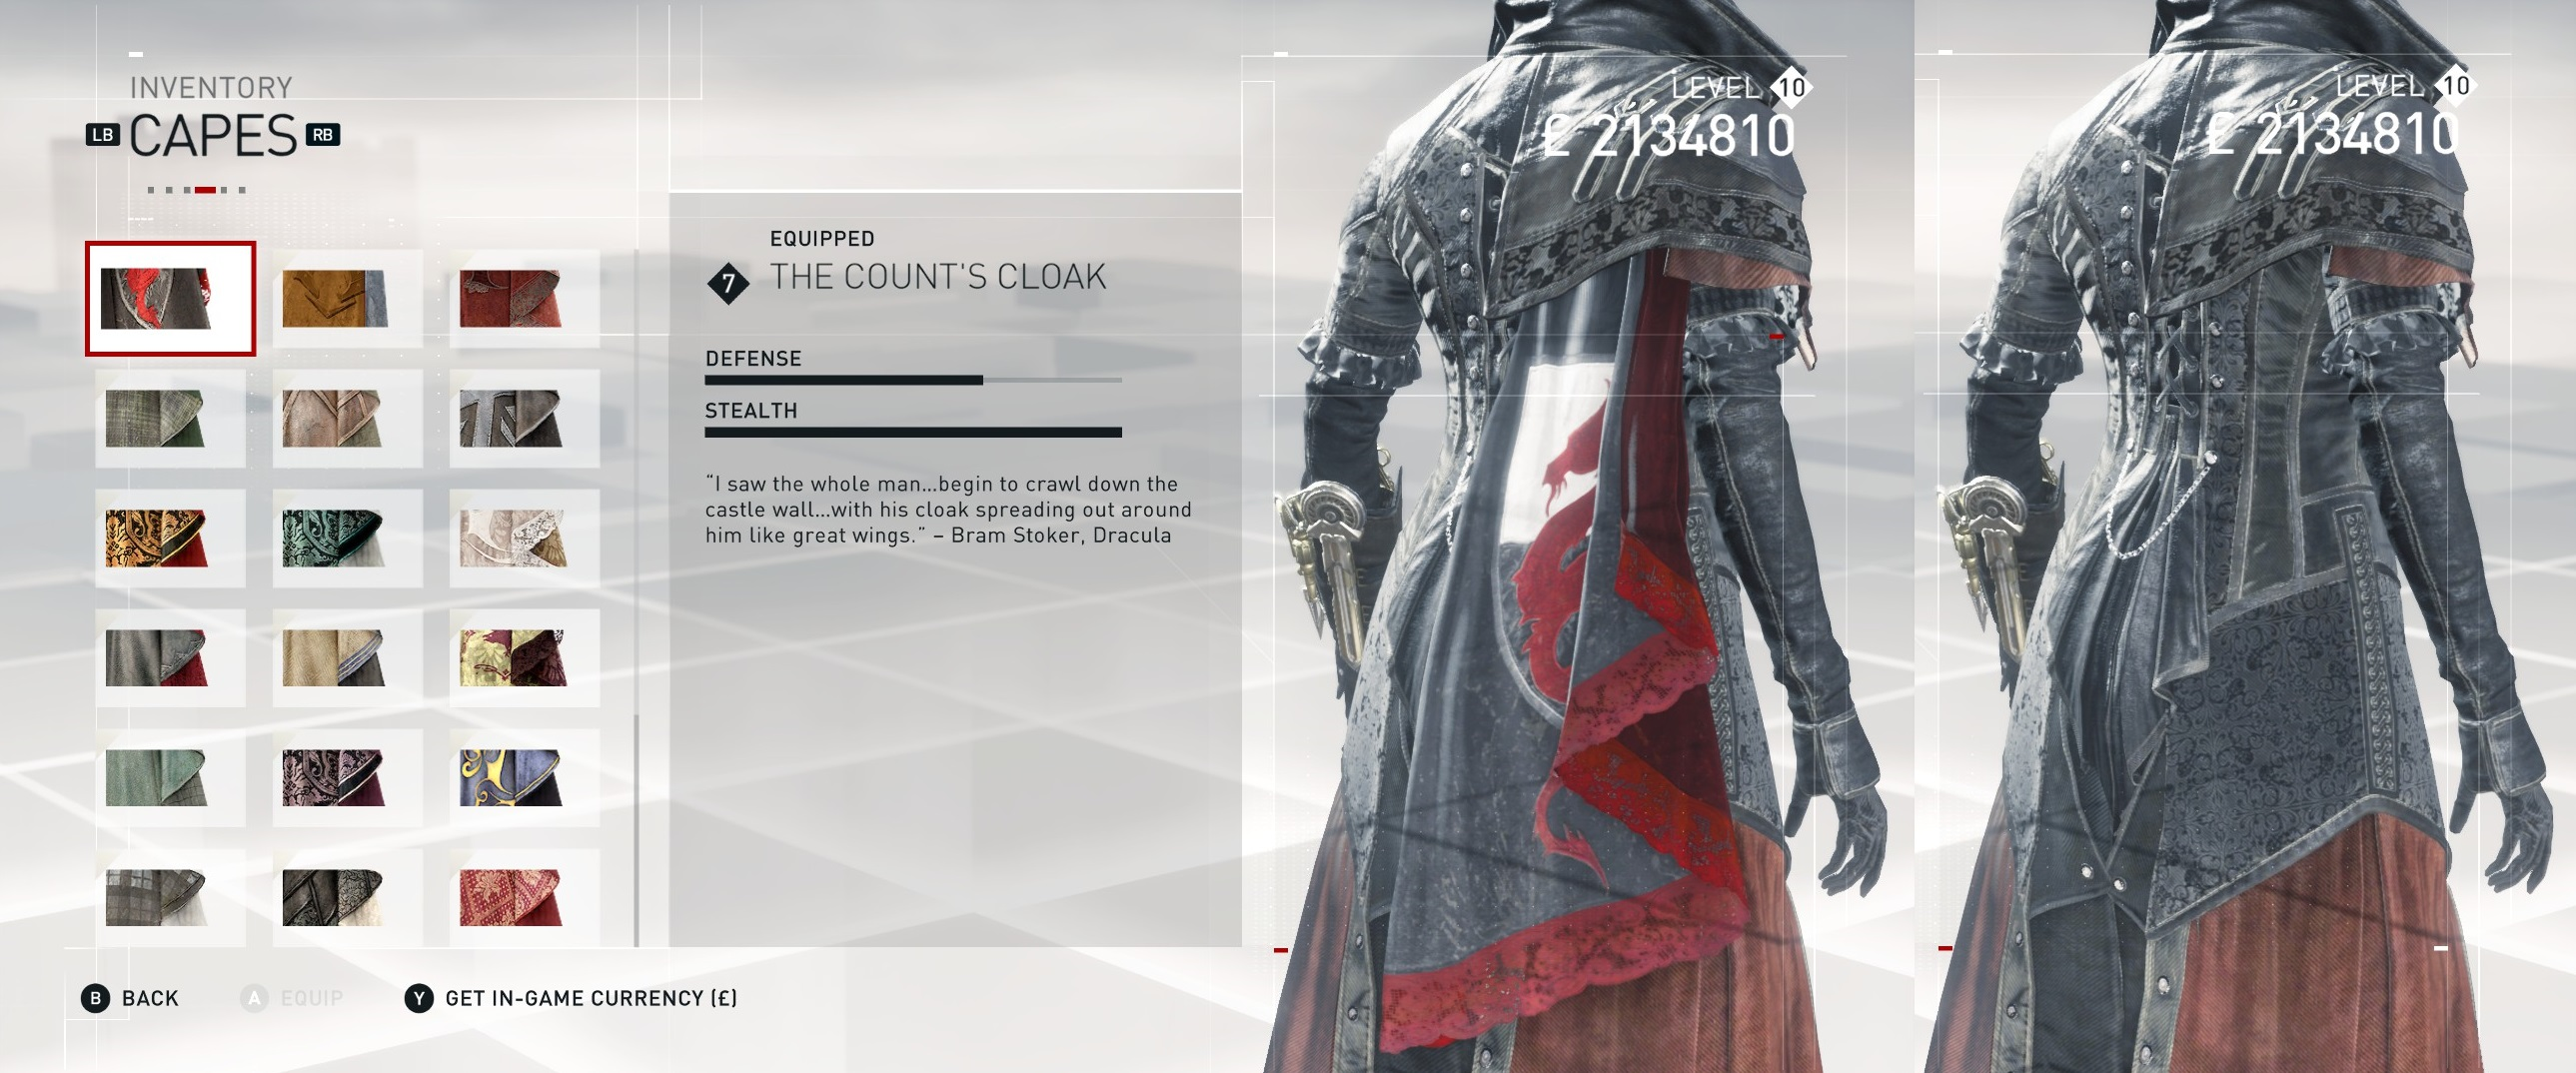 Hidden Cape For Evie Frye Mod Assassin S Creed Gamewatcher